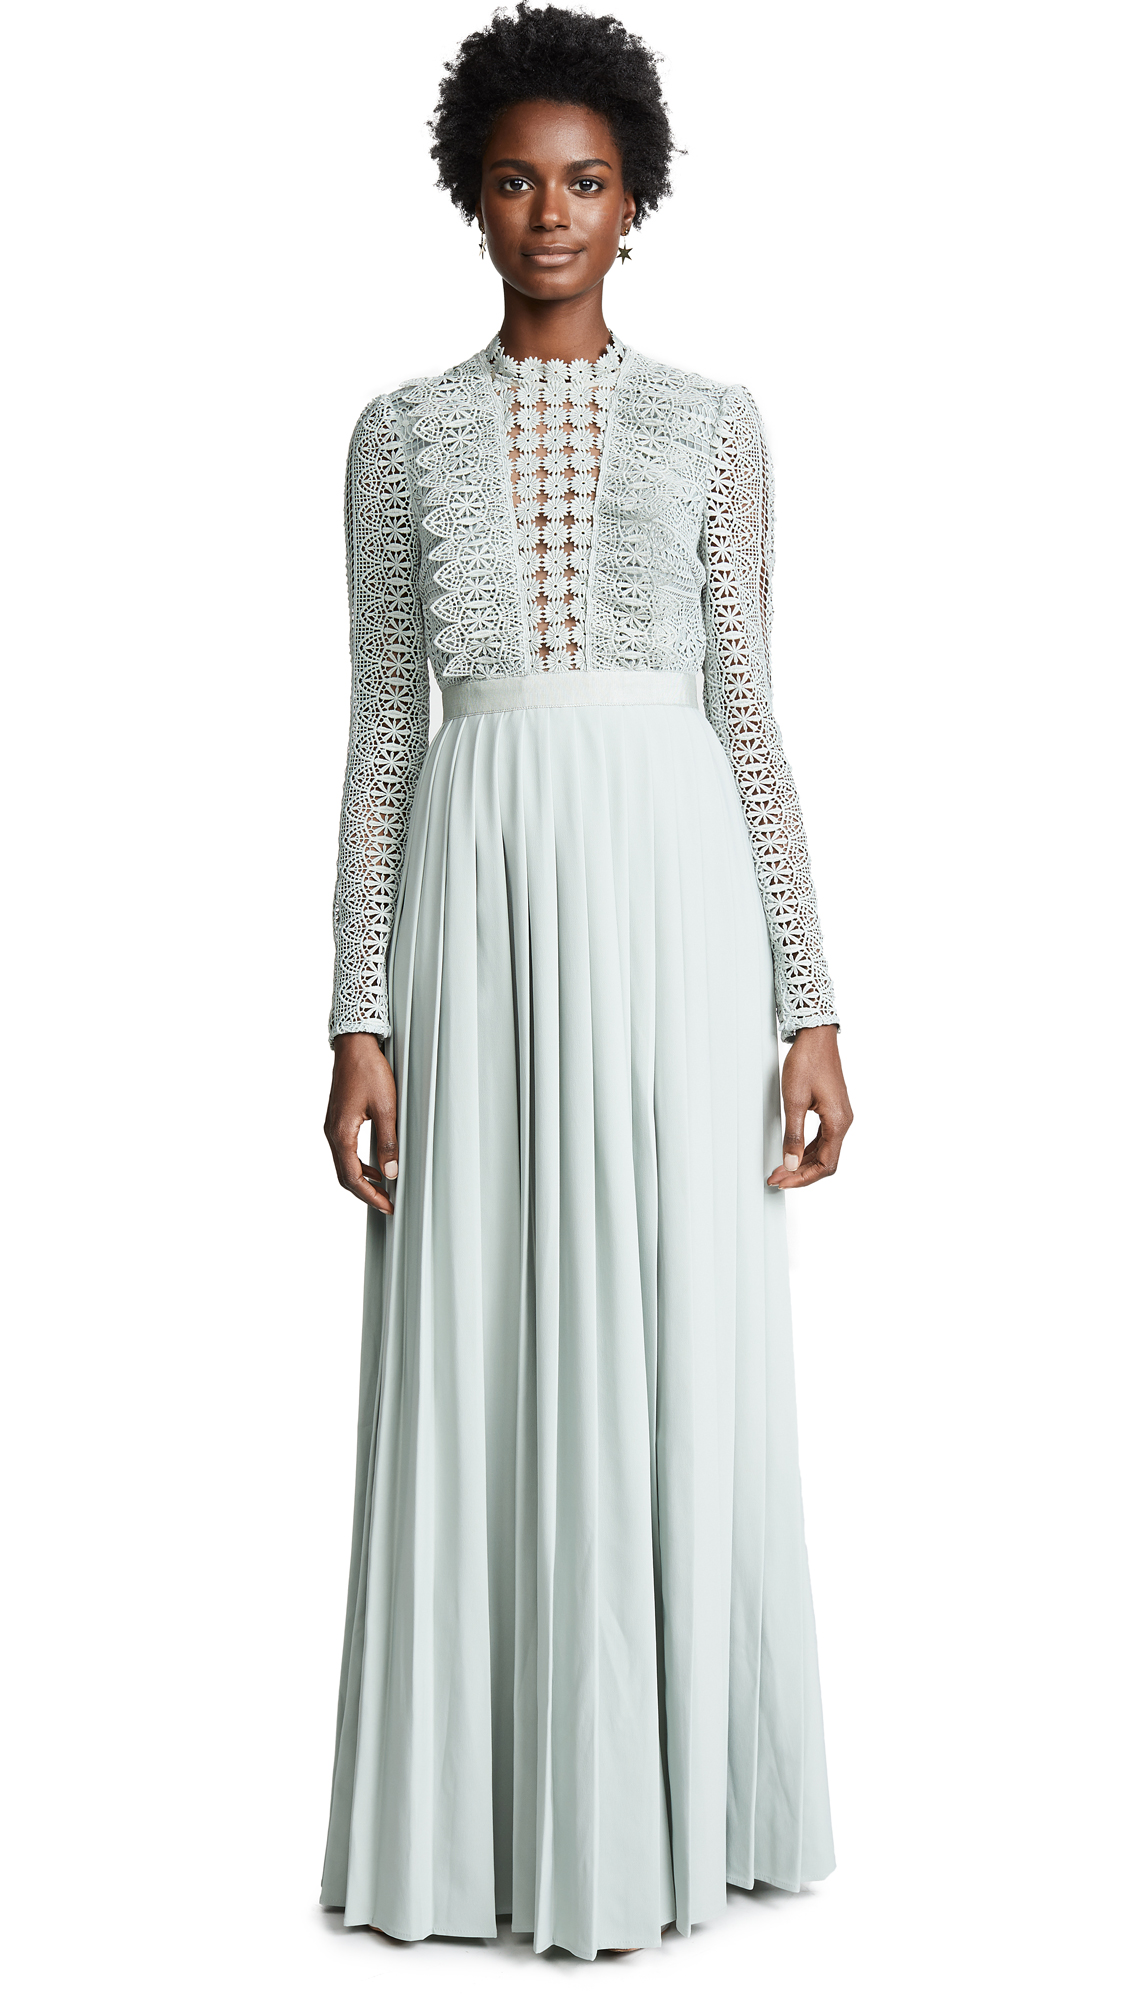 Self Portrait Spiral Lace Maxi Dress - Grey Blue